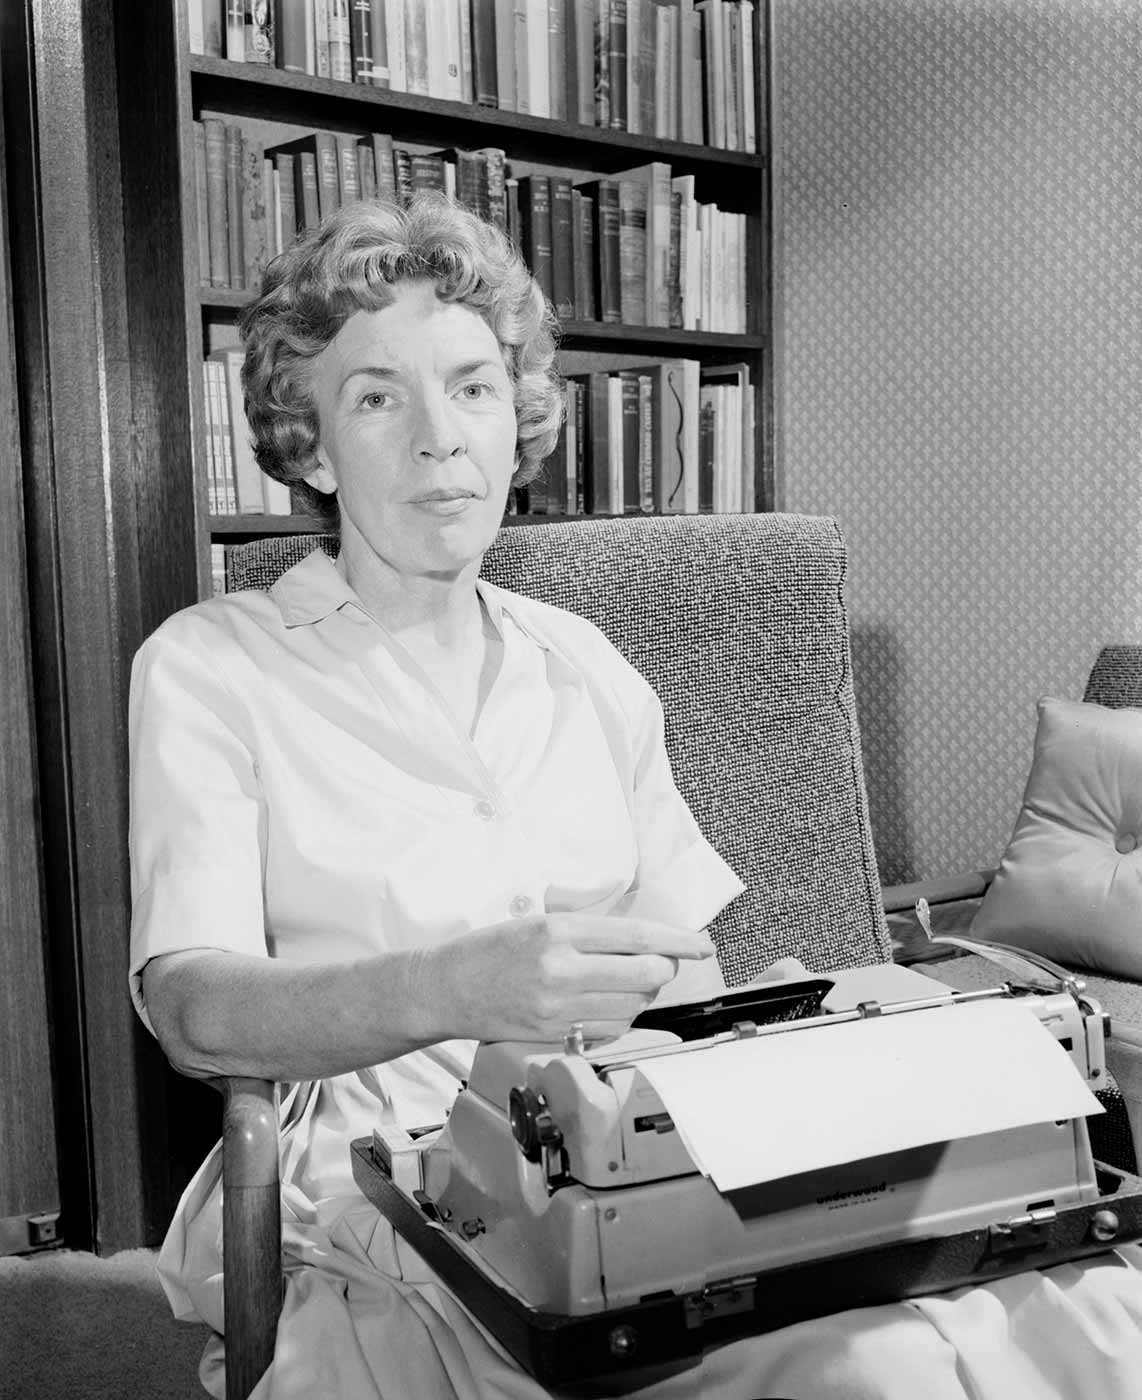 A black and white photograph of a woman sitting in an upholstered chair in front of a tall bookcase full of books. She has a portable typewriter on her lap and there is a sheet of paper in the typewriter platen. She is looking at the camera and resting her right hand on top of the typewriter. - click to view larger image